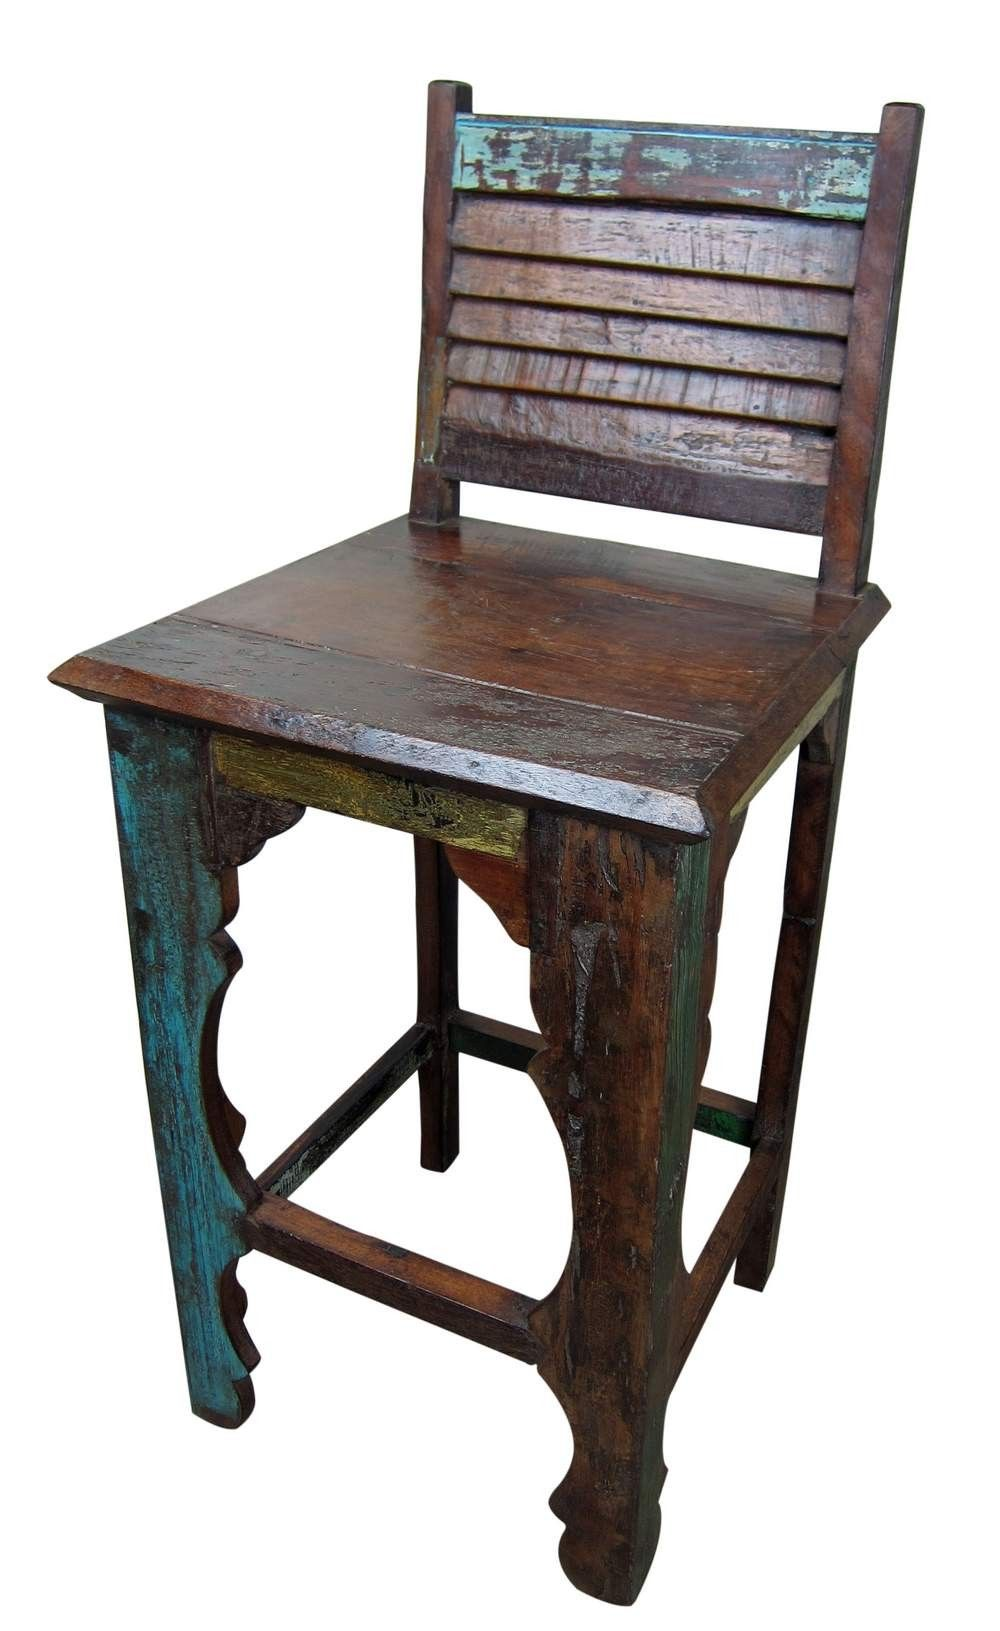 rustic wood bar stools. Mexicali Rustic Wood Bar Stools | Solid Recycled Furniture Online